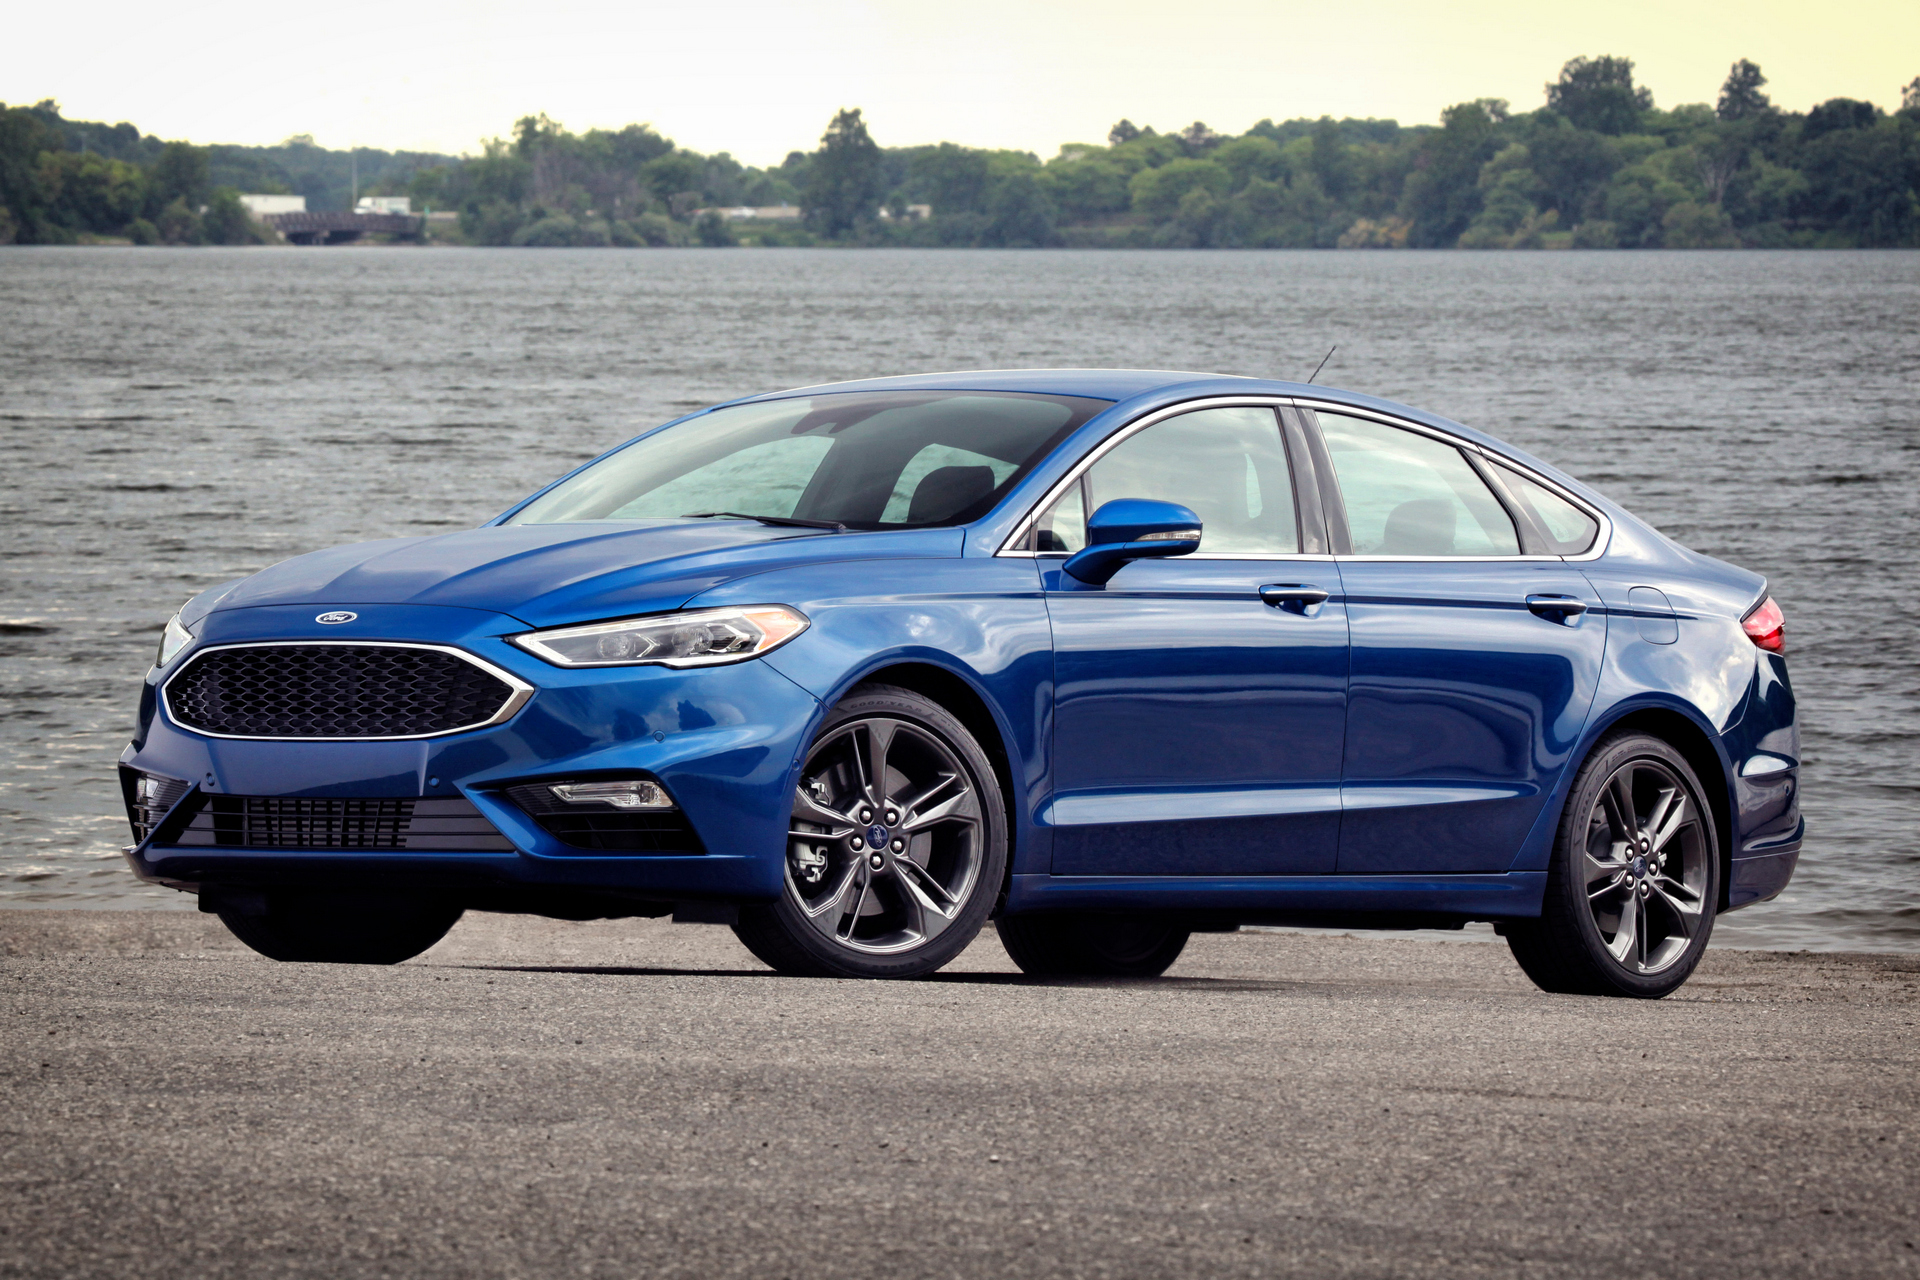 2017 Ford Fusion Sport Profile View © Ford Motor Company